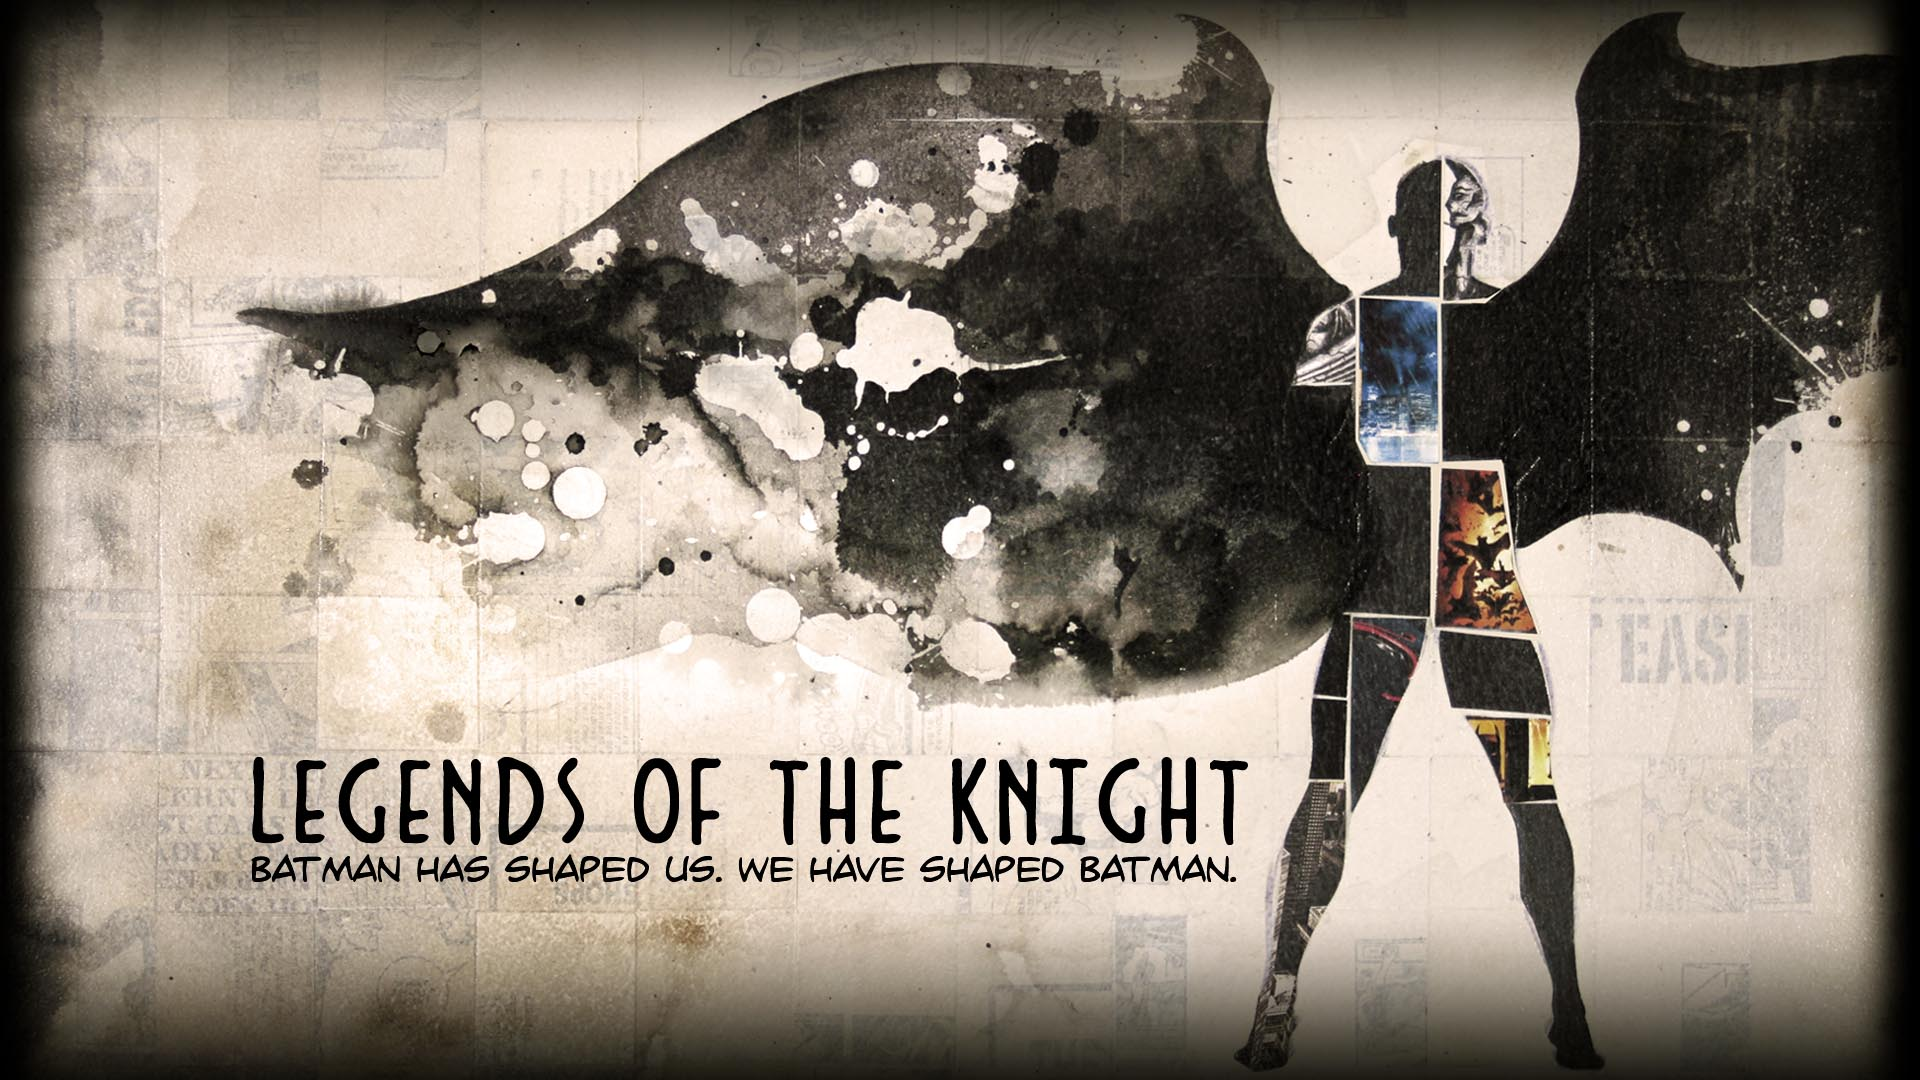 LOTK Documentary Film Exploring the Power of Batman Launches Tour